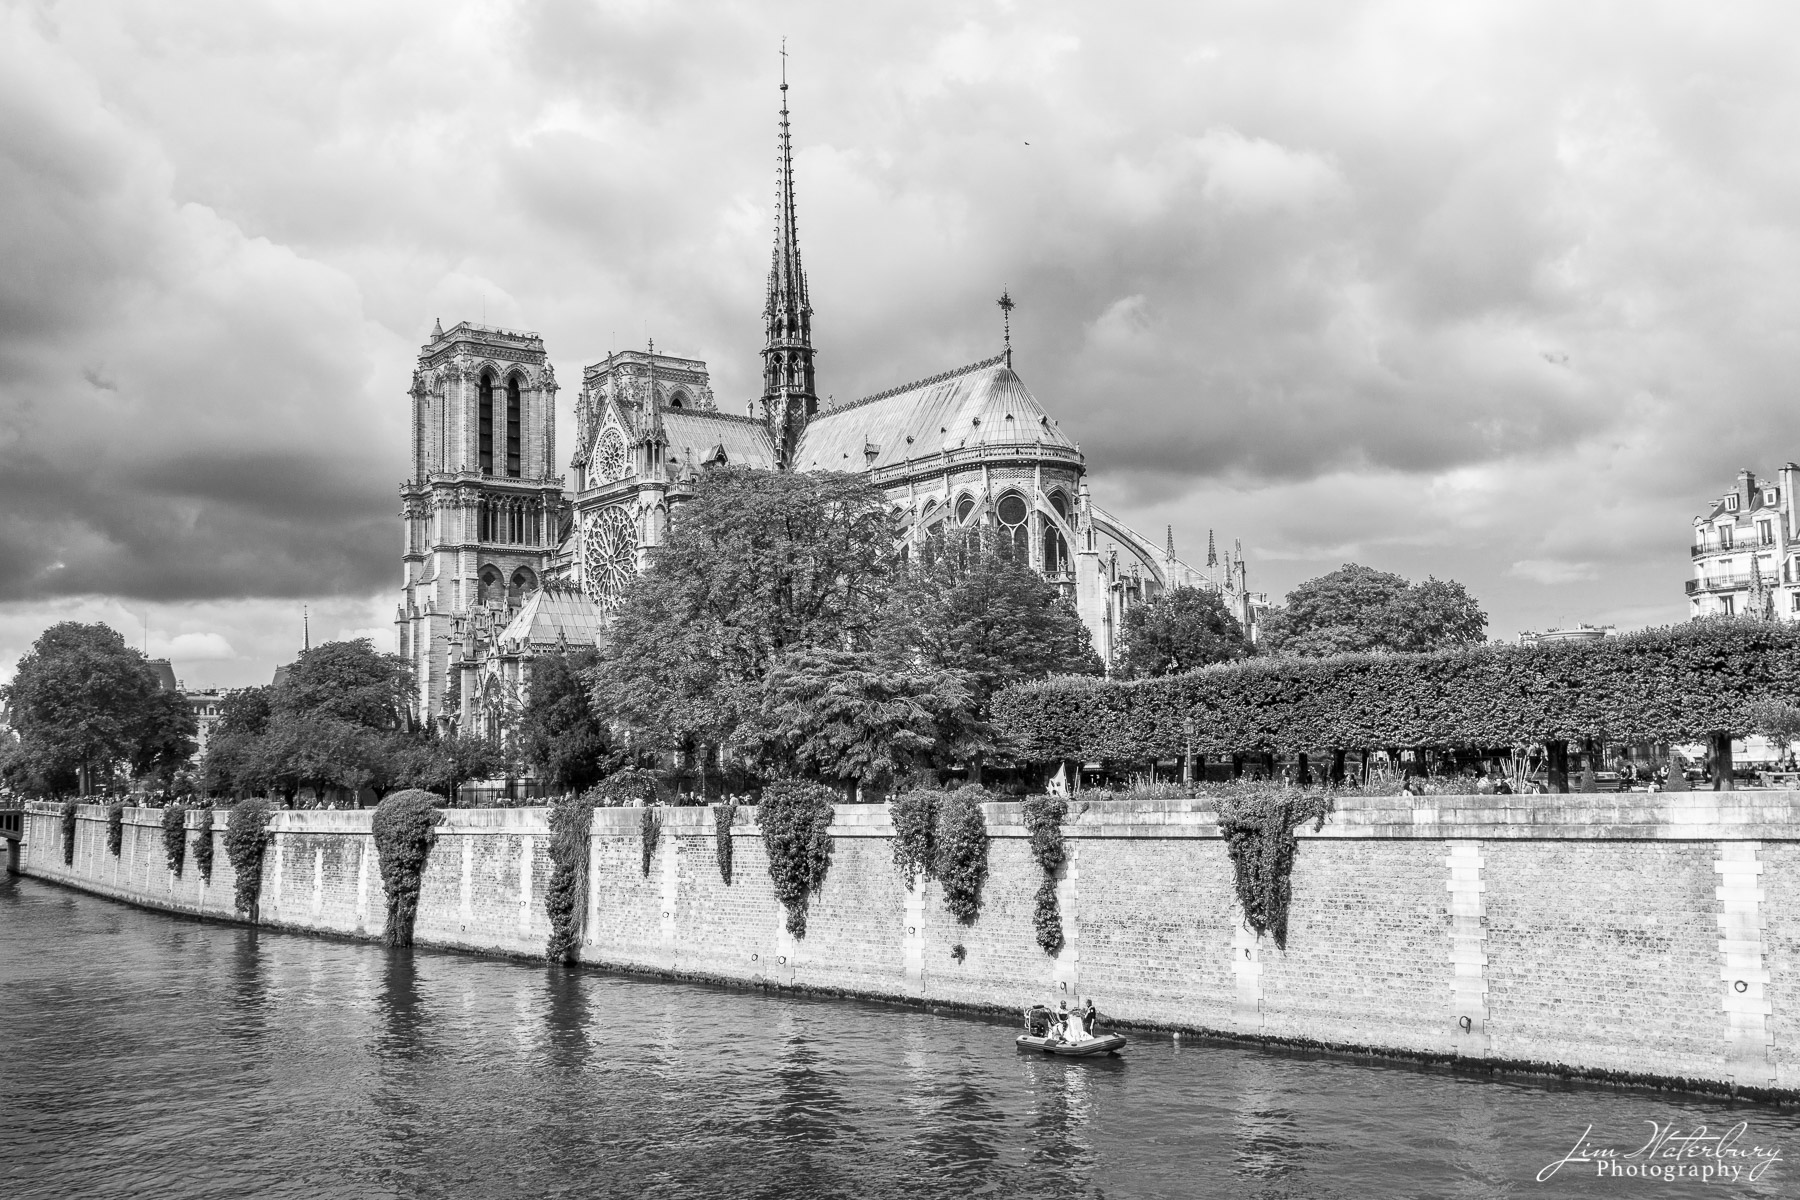 Notre Dame de Paris (Notre Dame Cathedrale) as viewed from across the Seine, before the 2019 fire that destroyed much of the...